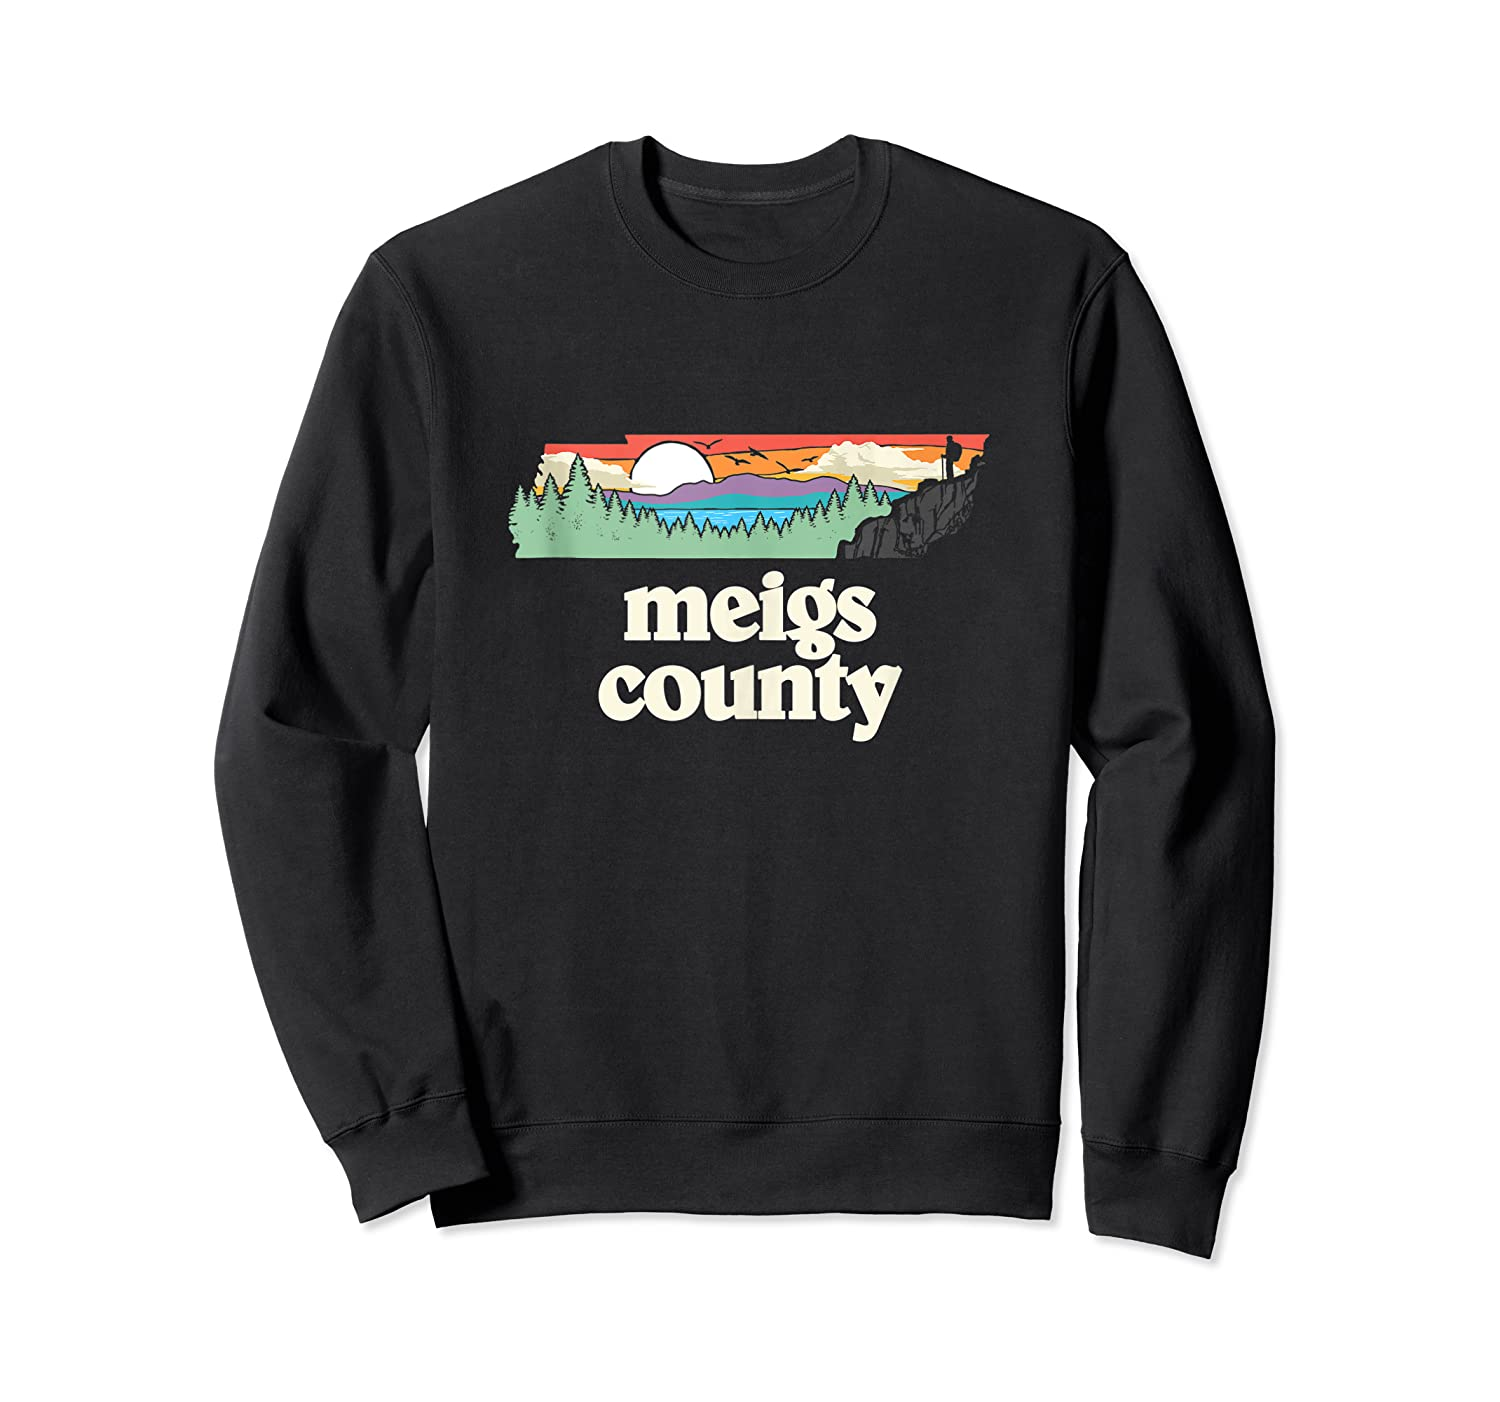 Meigs County Tennessee Outdoors Retro Nature Graphic Tank Top Shirts Crewneck Sweater